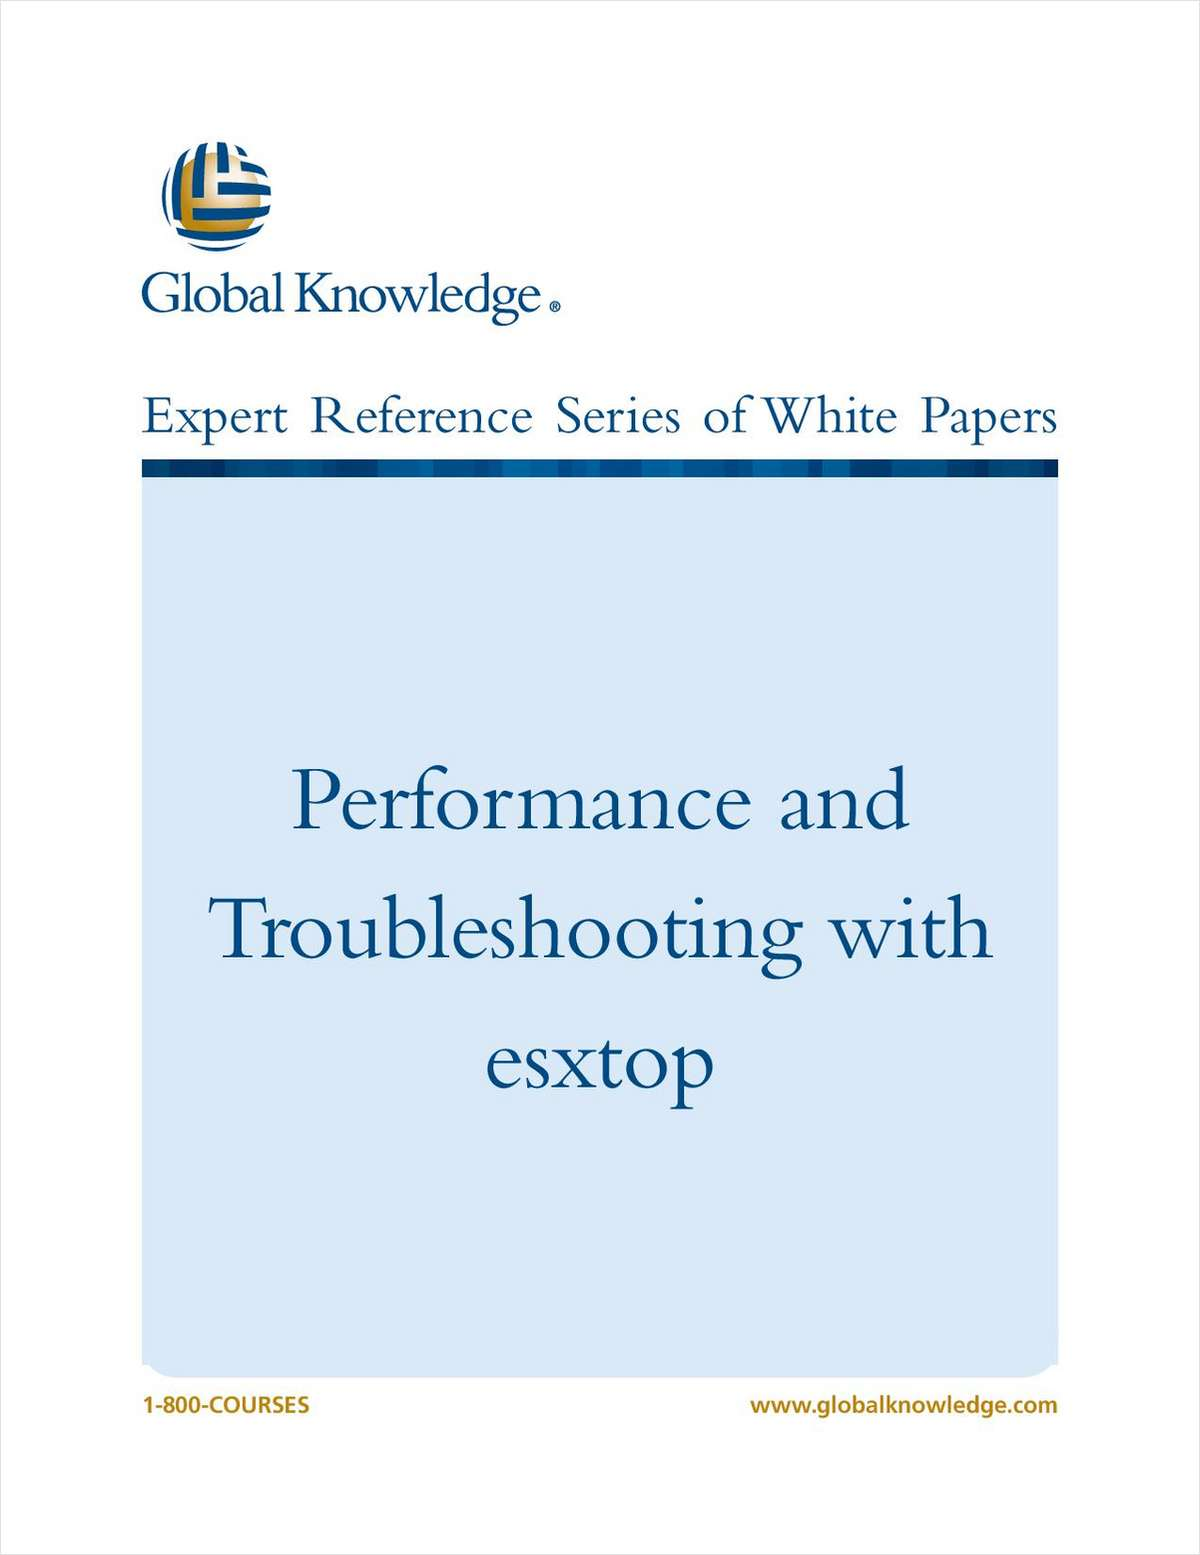 Performance and Troubleshooting with esxtop